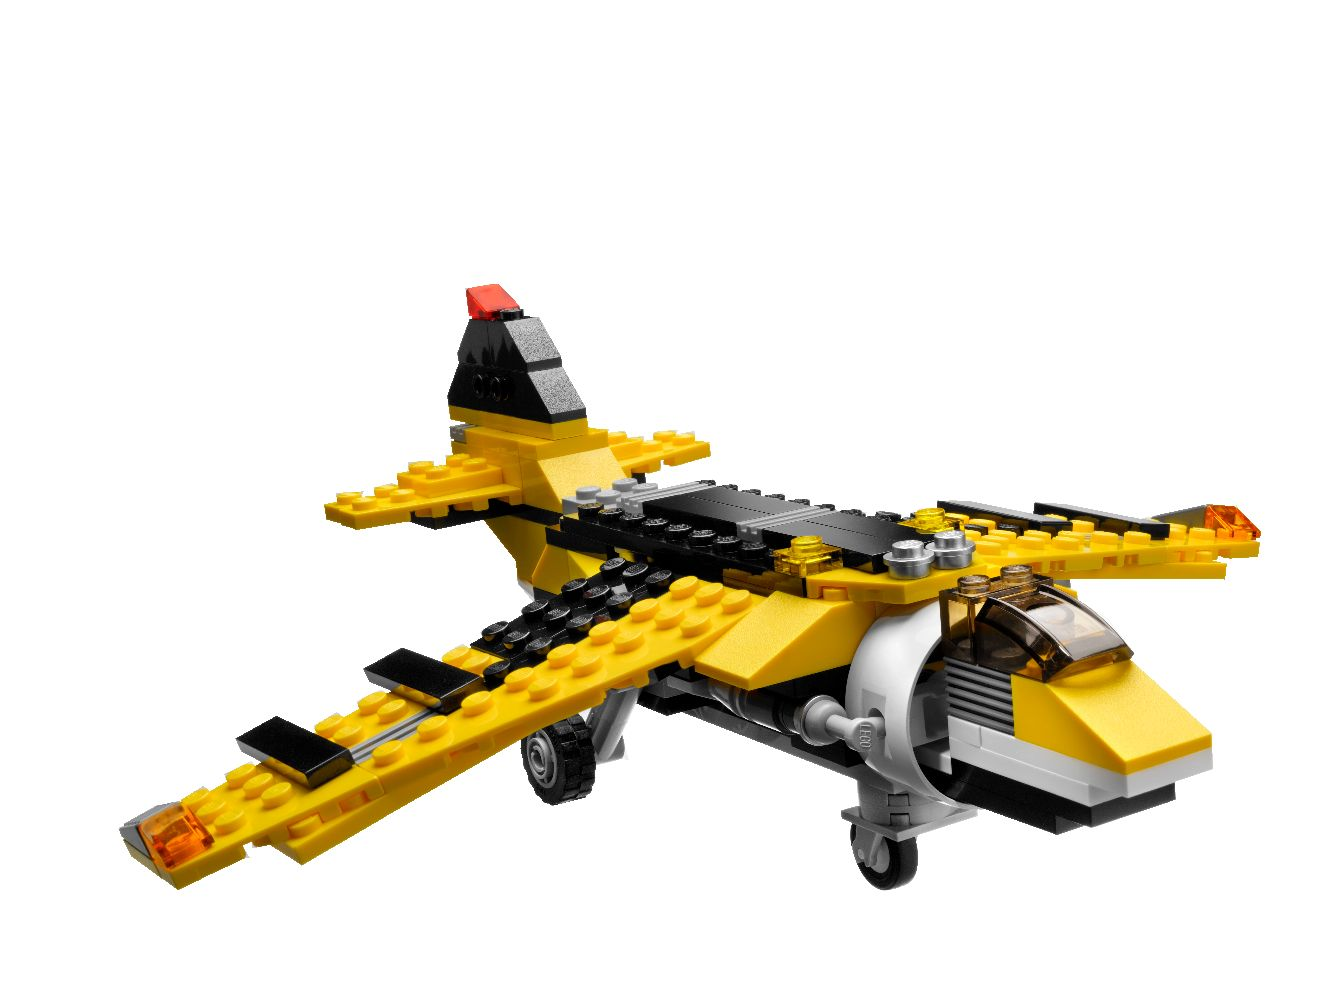 lego 6745 creator gelbe flieger propeller power. Black Bedroom Furniture Sets. Home Design Ideas